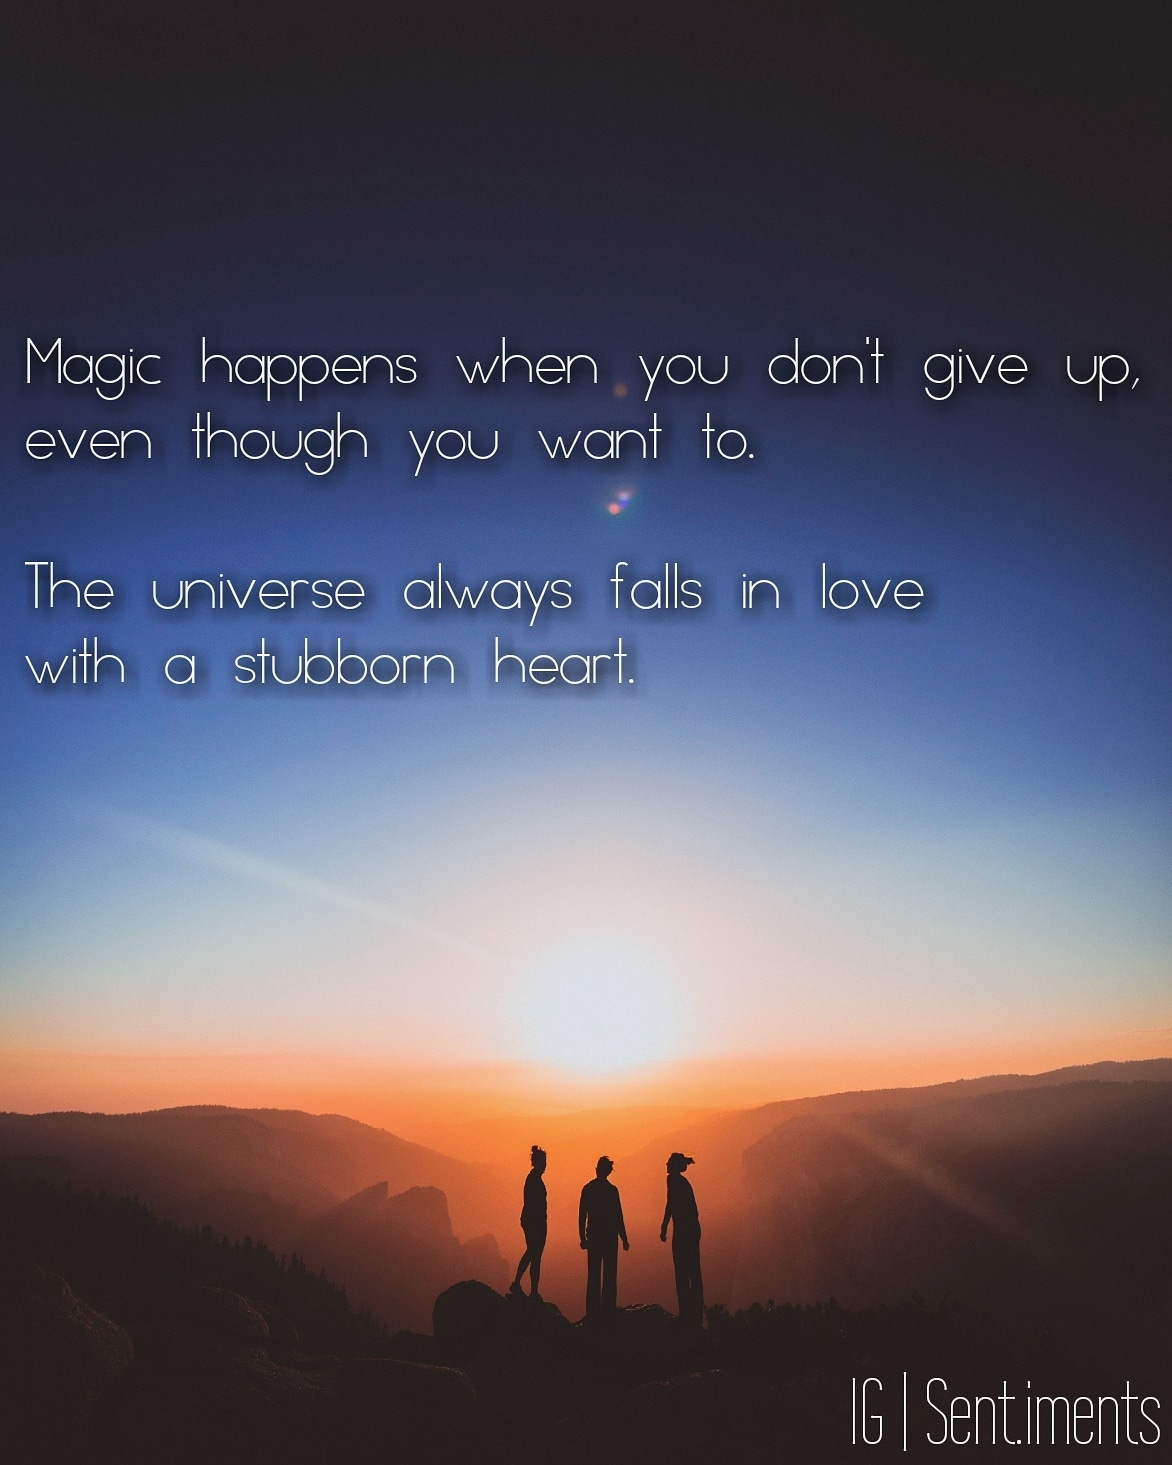 Magic happens when you don't give up, even though you want to. The universe always falls in love with a stubborn heart by Unknown (1172 X 1465)